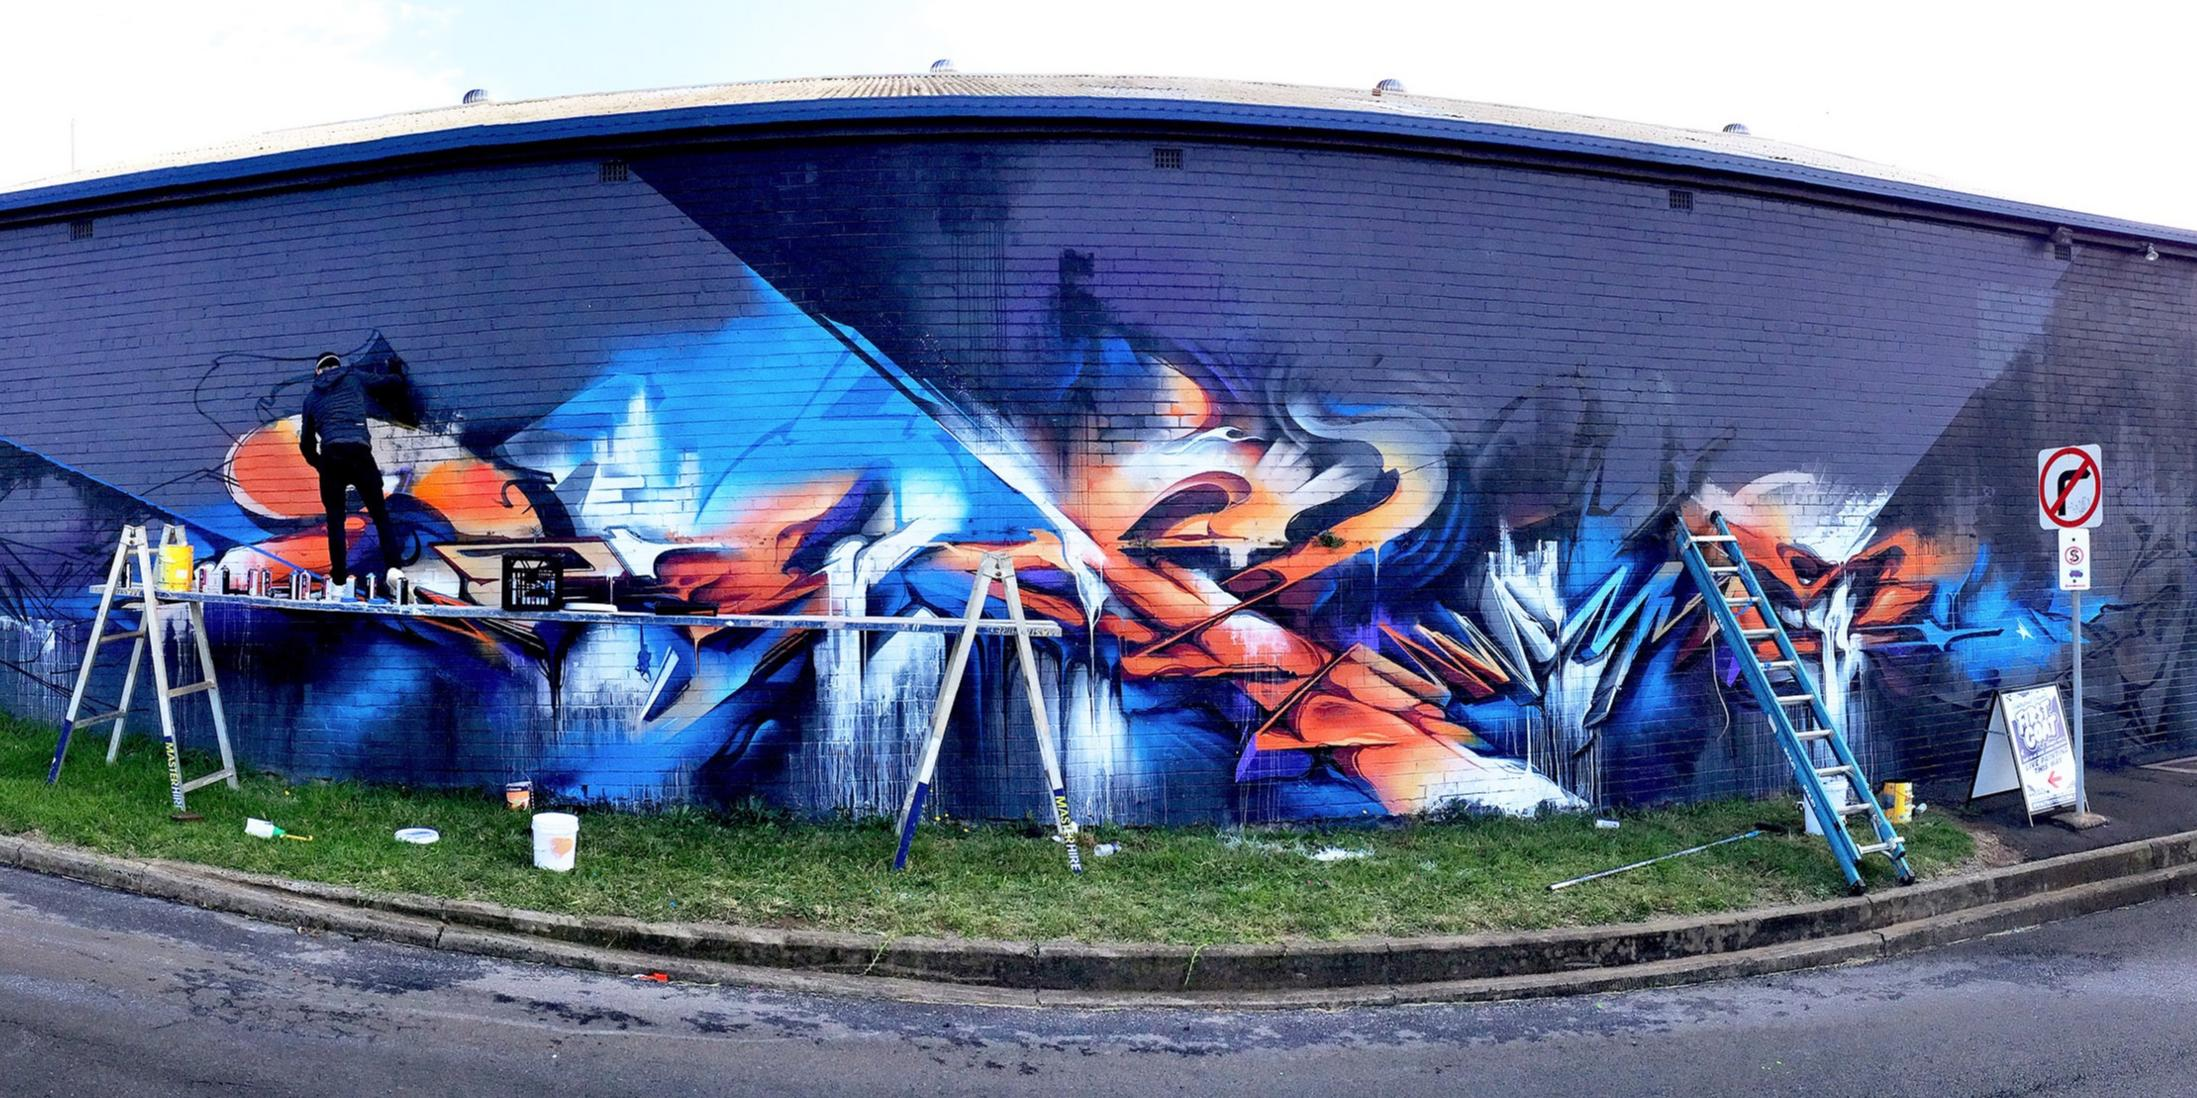 A work by Does - Toowoomba, Australia_thumb